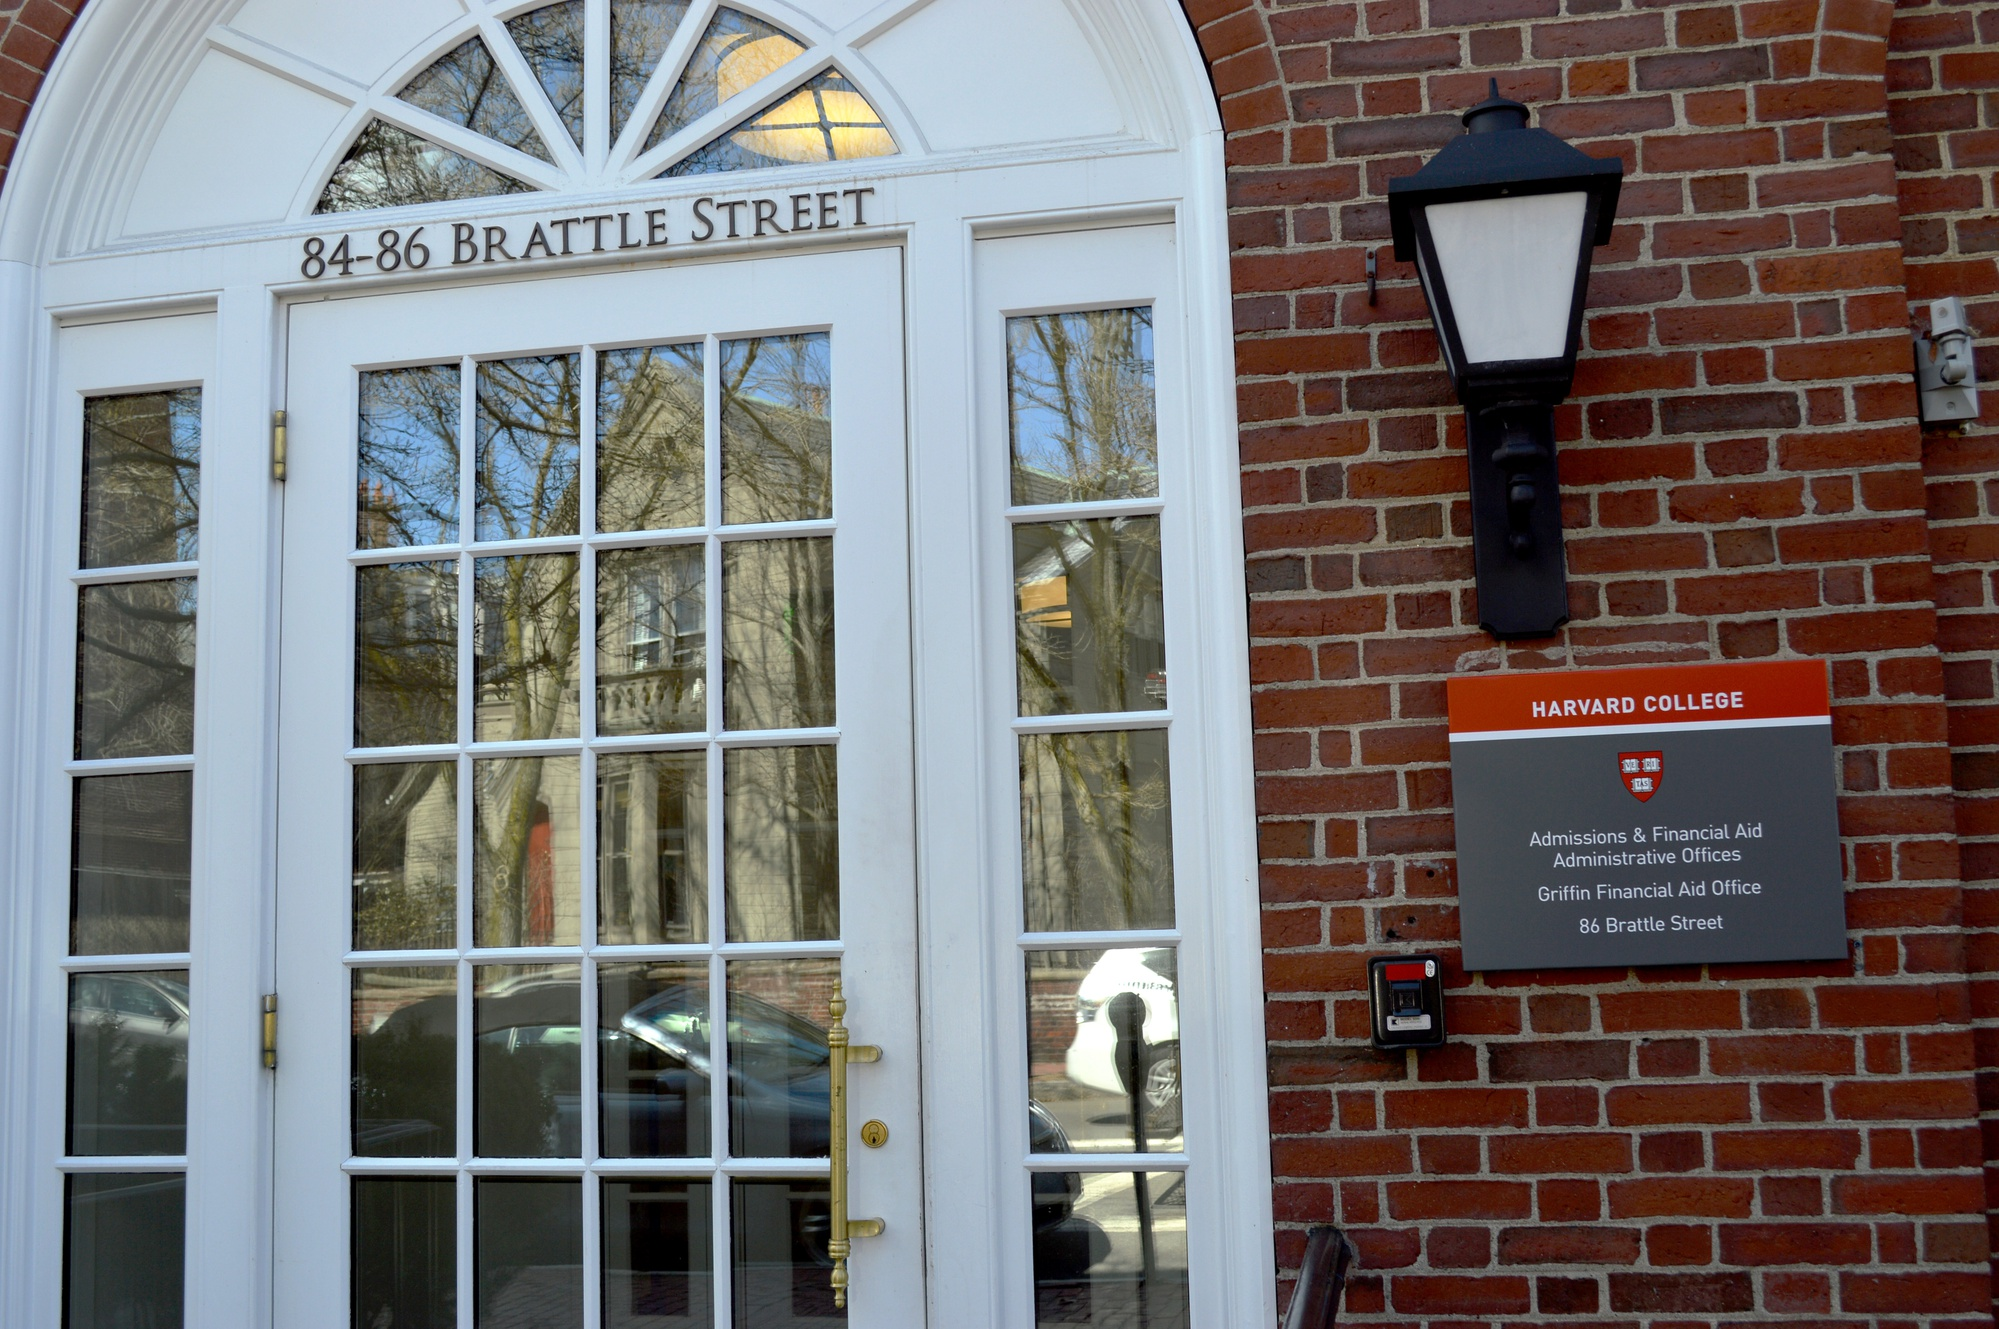 The Harvard College Office of Admissions and Financial Aid located at 86 Brattle Street.